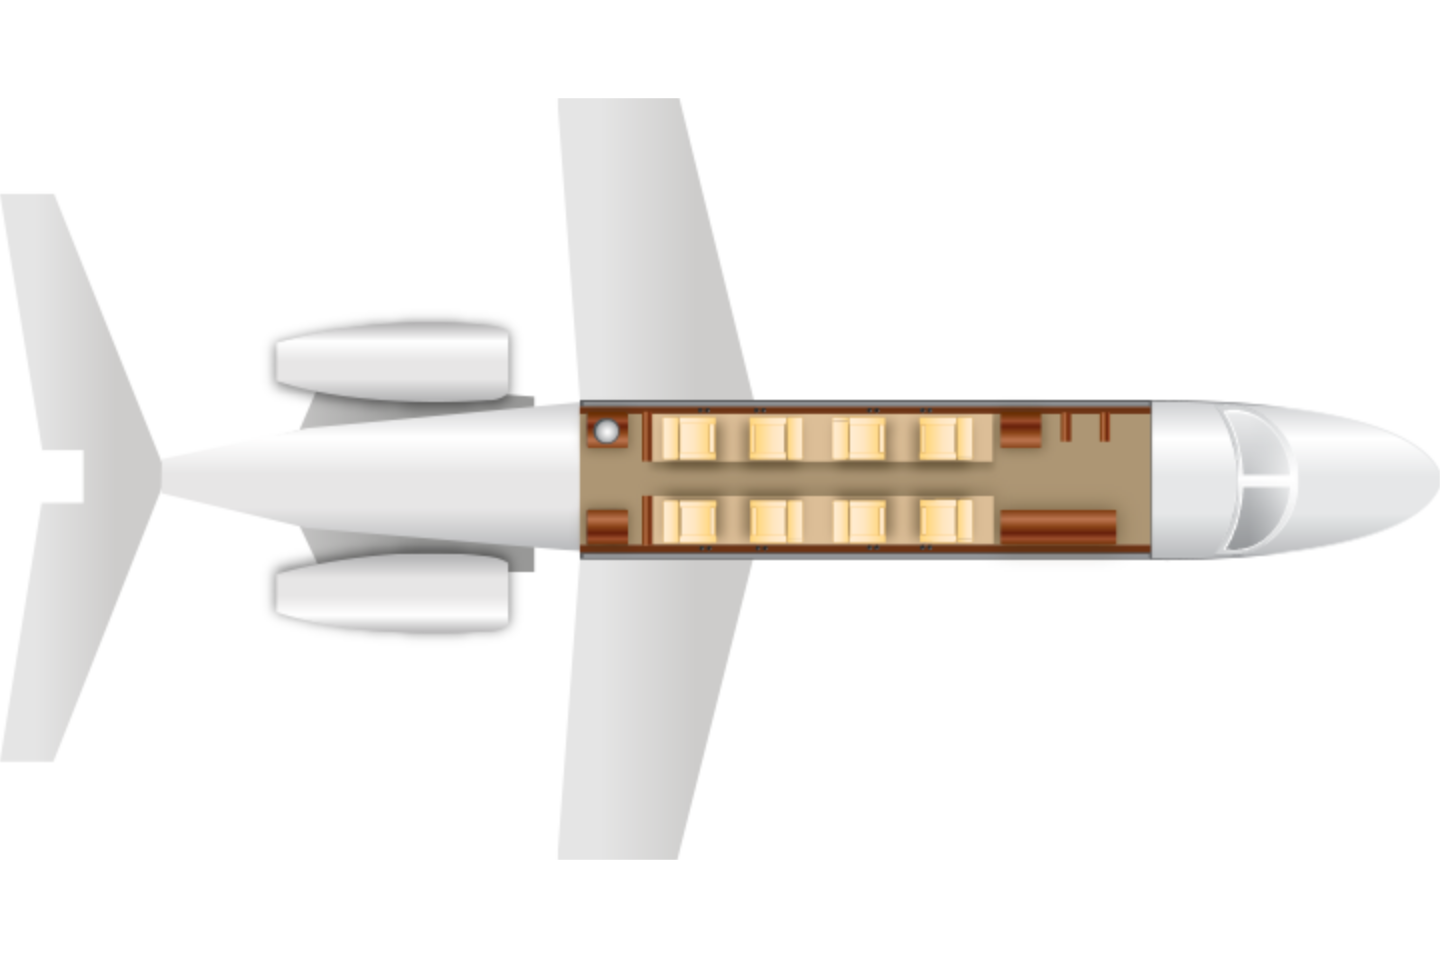 Private Super Mid Size Jet Citation Sovereign Floor Plan